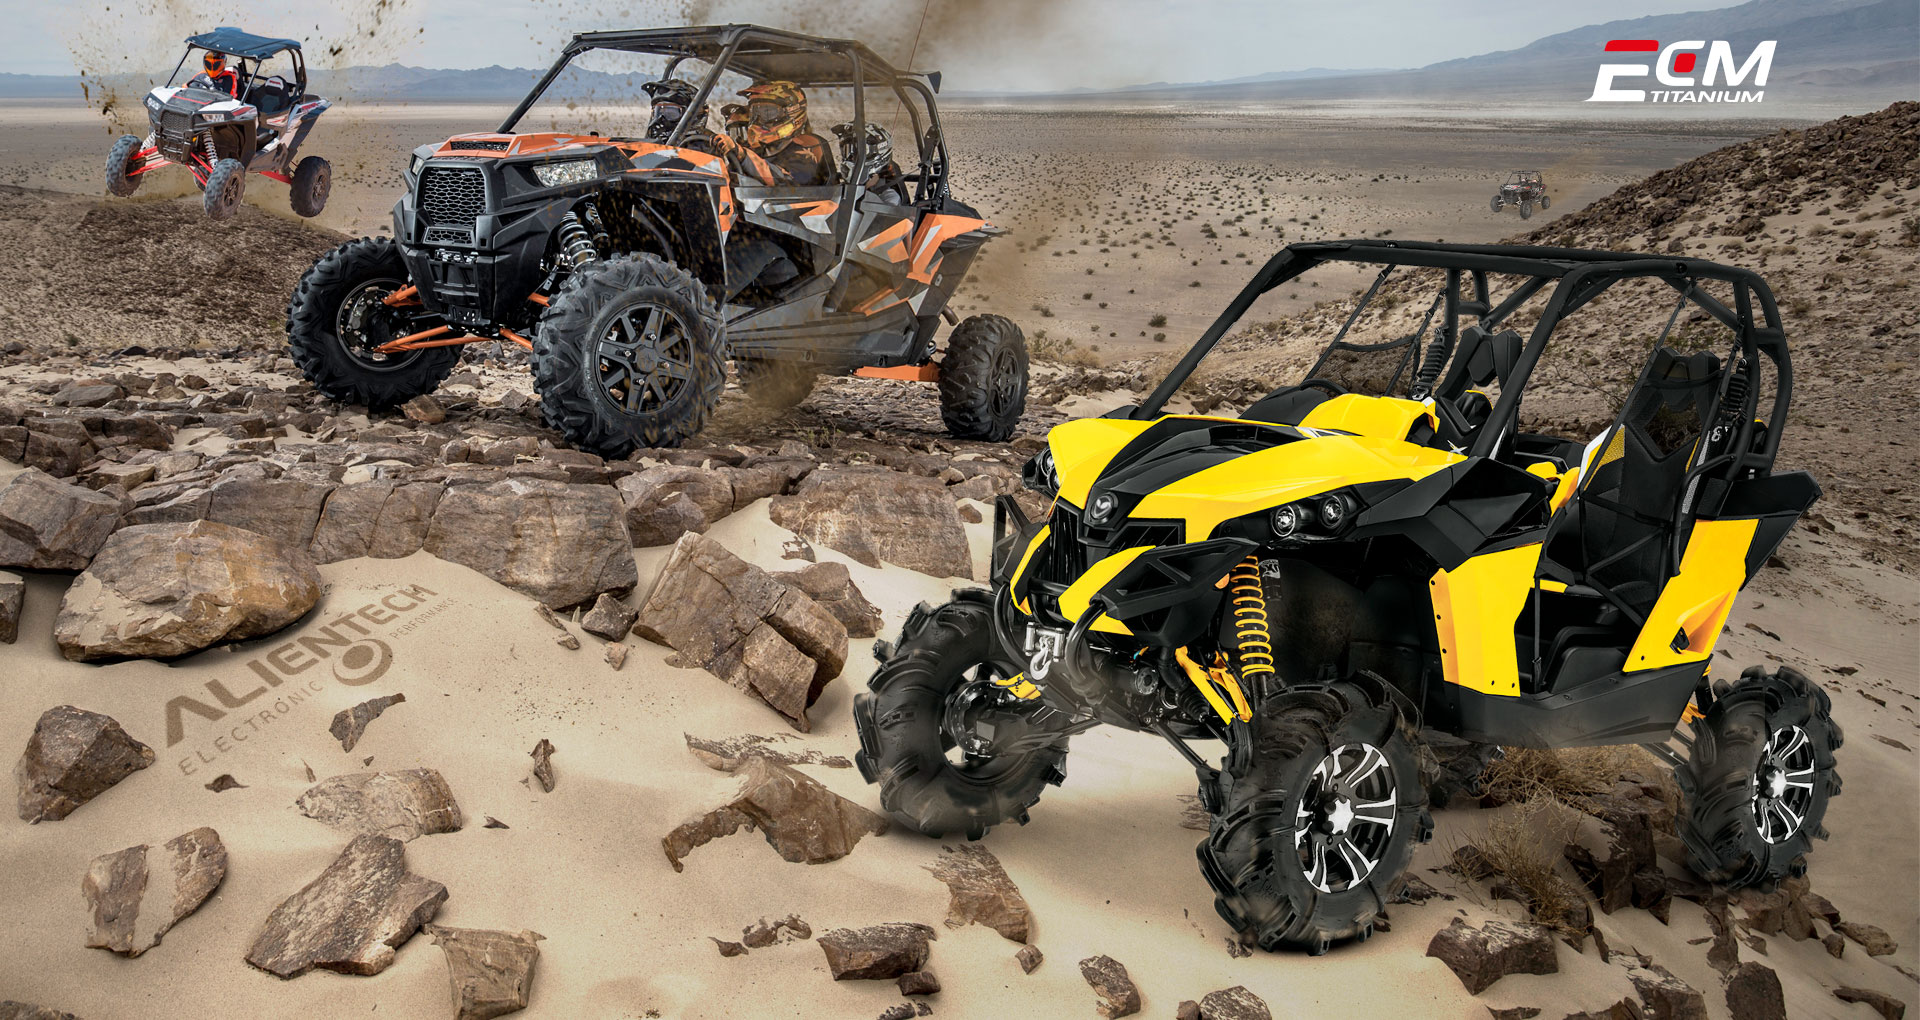 Alientech USA - All-Terrain Vehicle and Side by Side